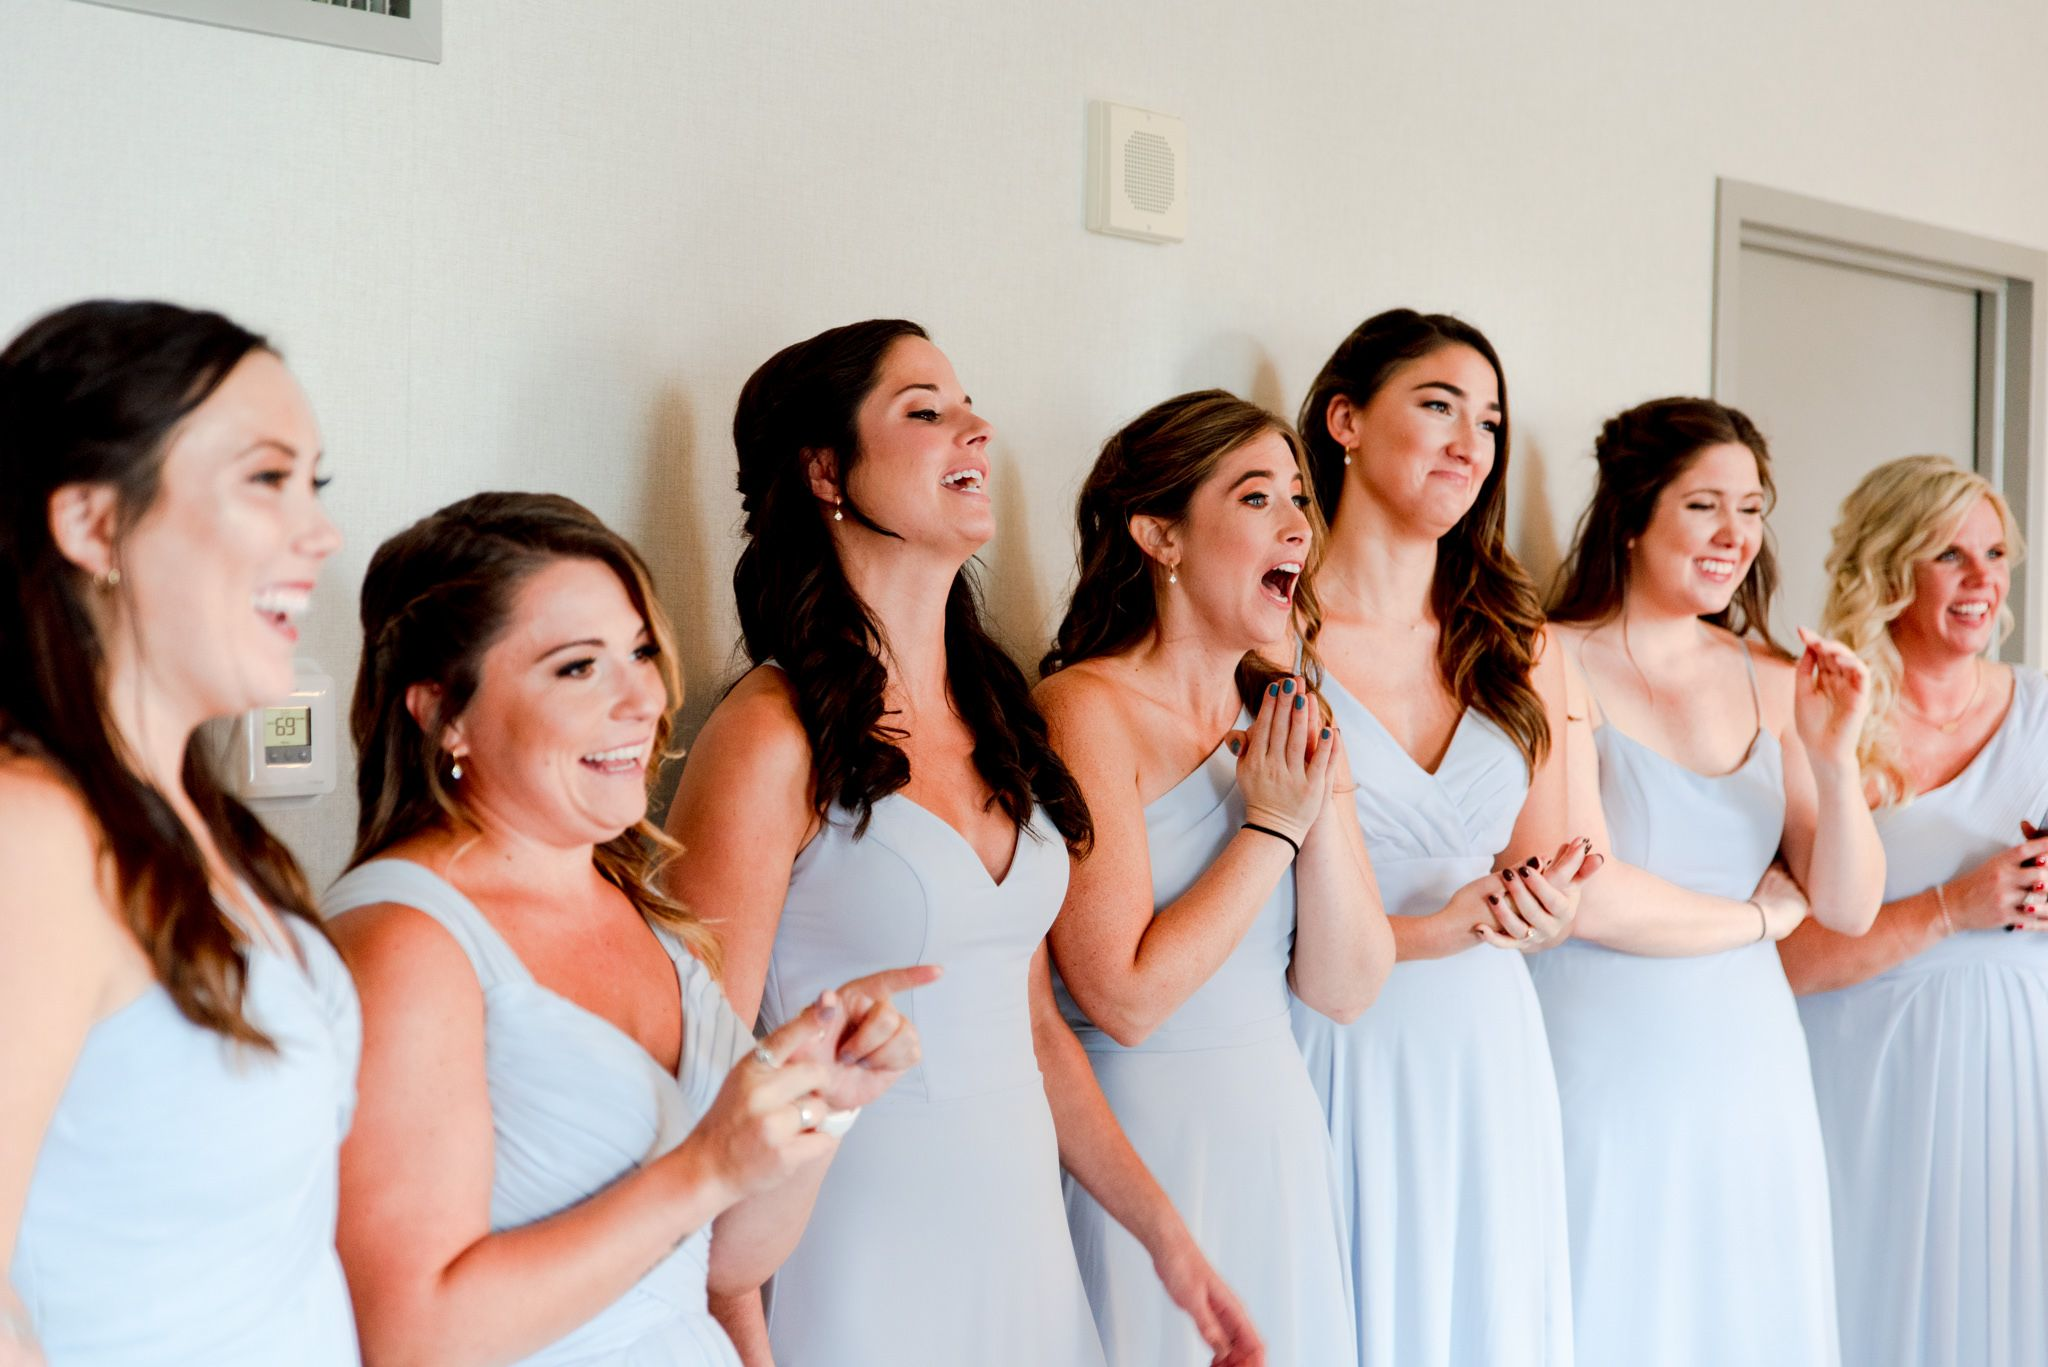 7 bridesmaids in light blue dresses smiling and clapping after seeing the bride